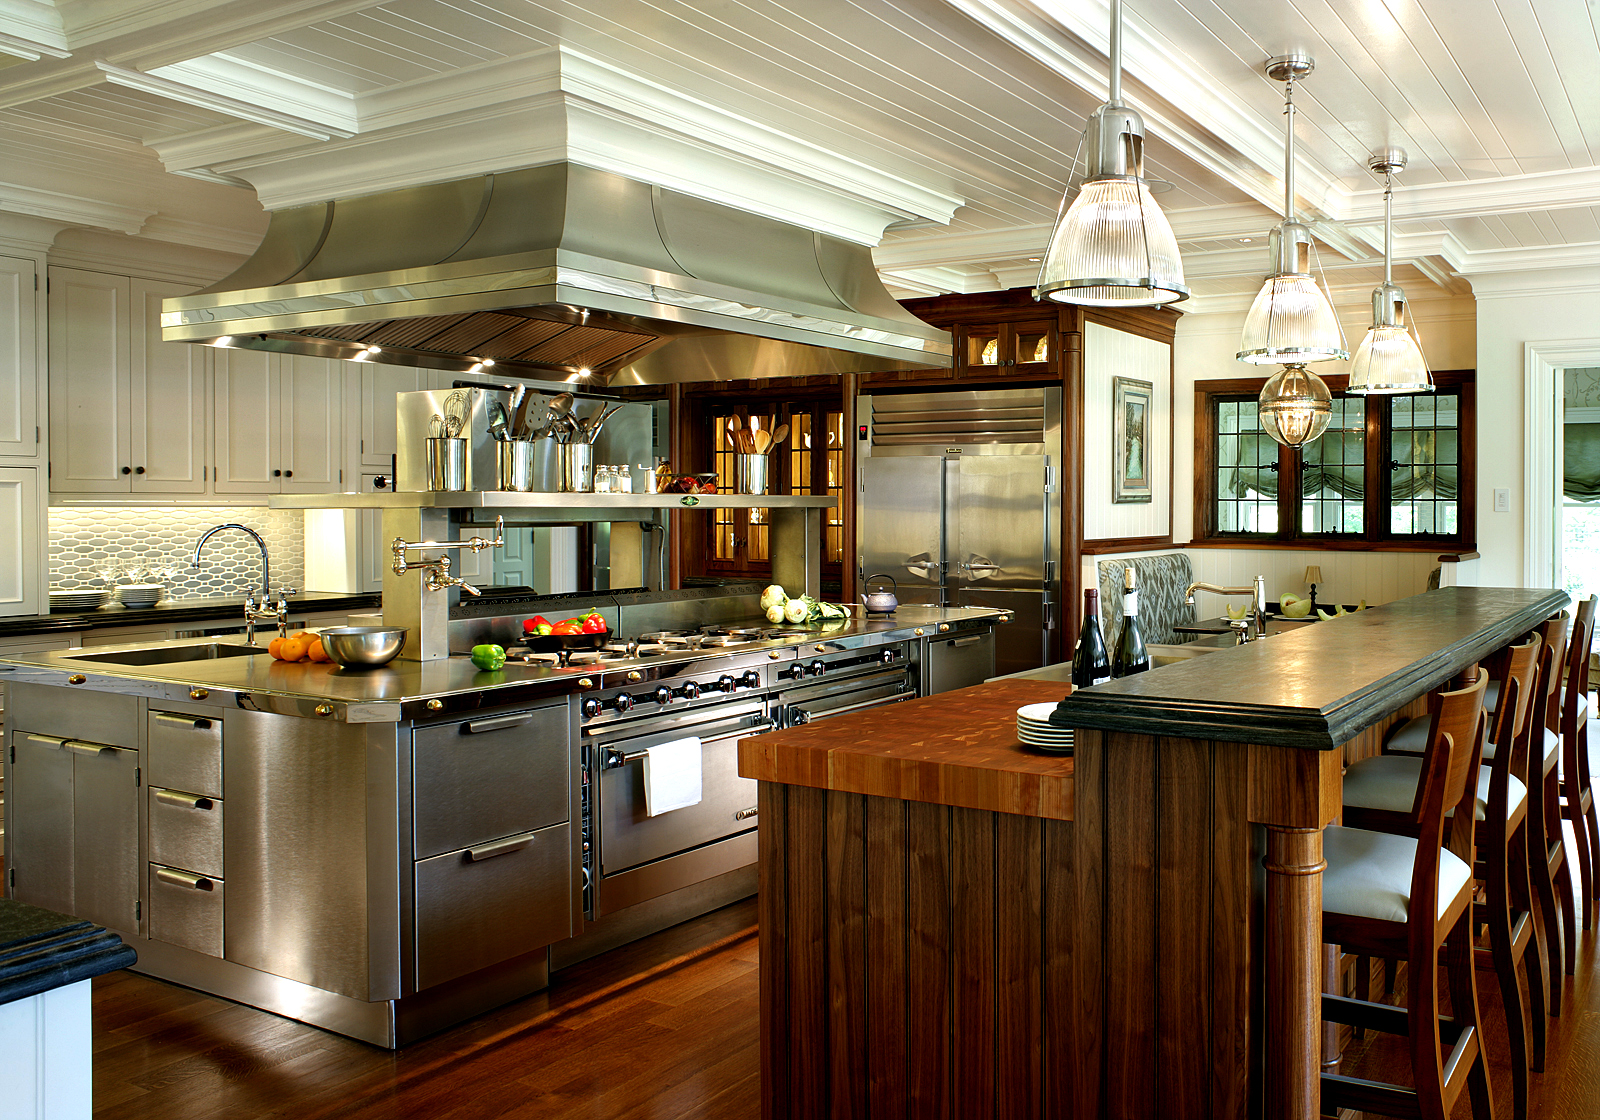 The 2012 Nkba Kitchen Of The Year Featured In Peter Salerno S Online Design Portfolio